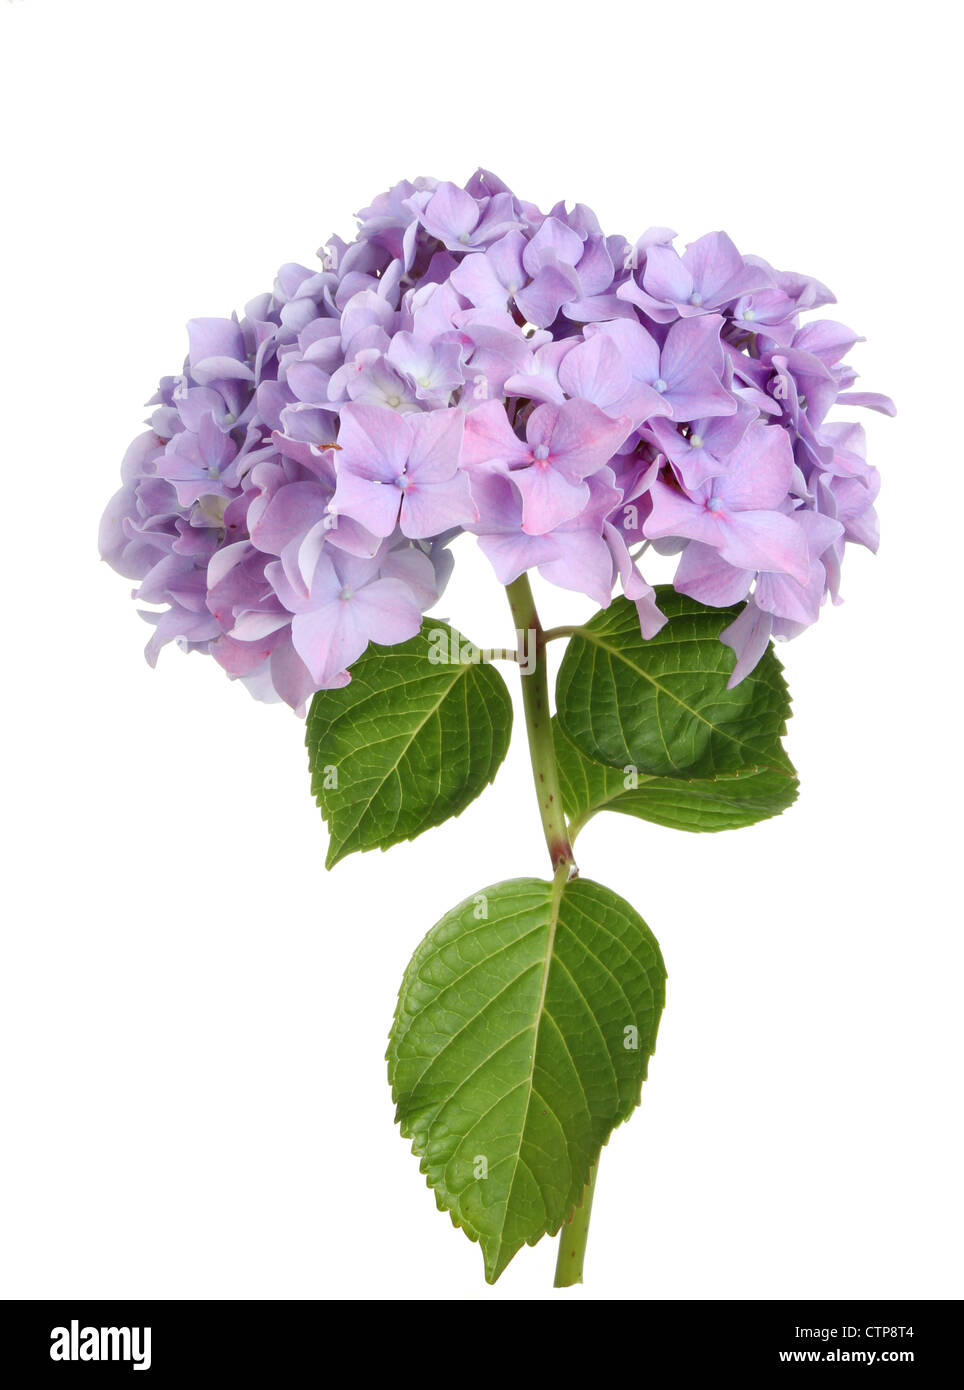 Mophead hydrangea flower and leaves isolated against white - Stock Image